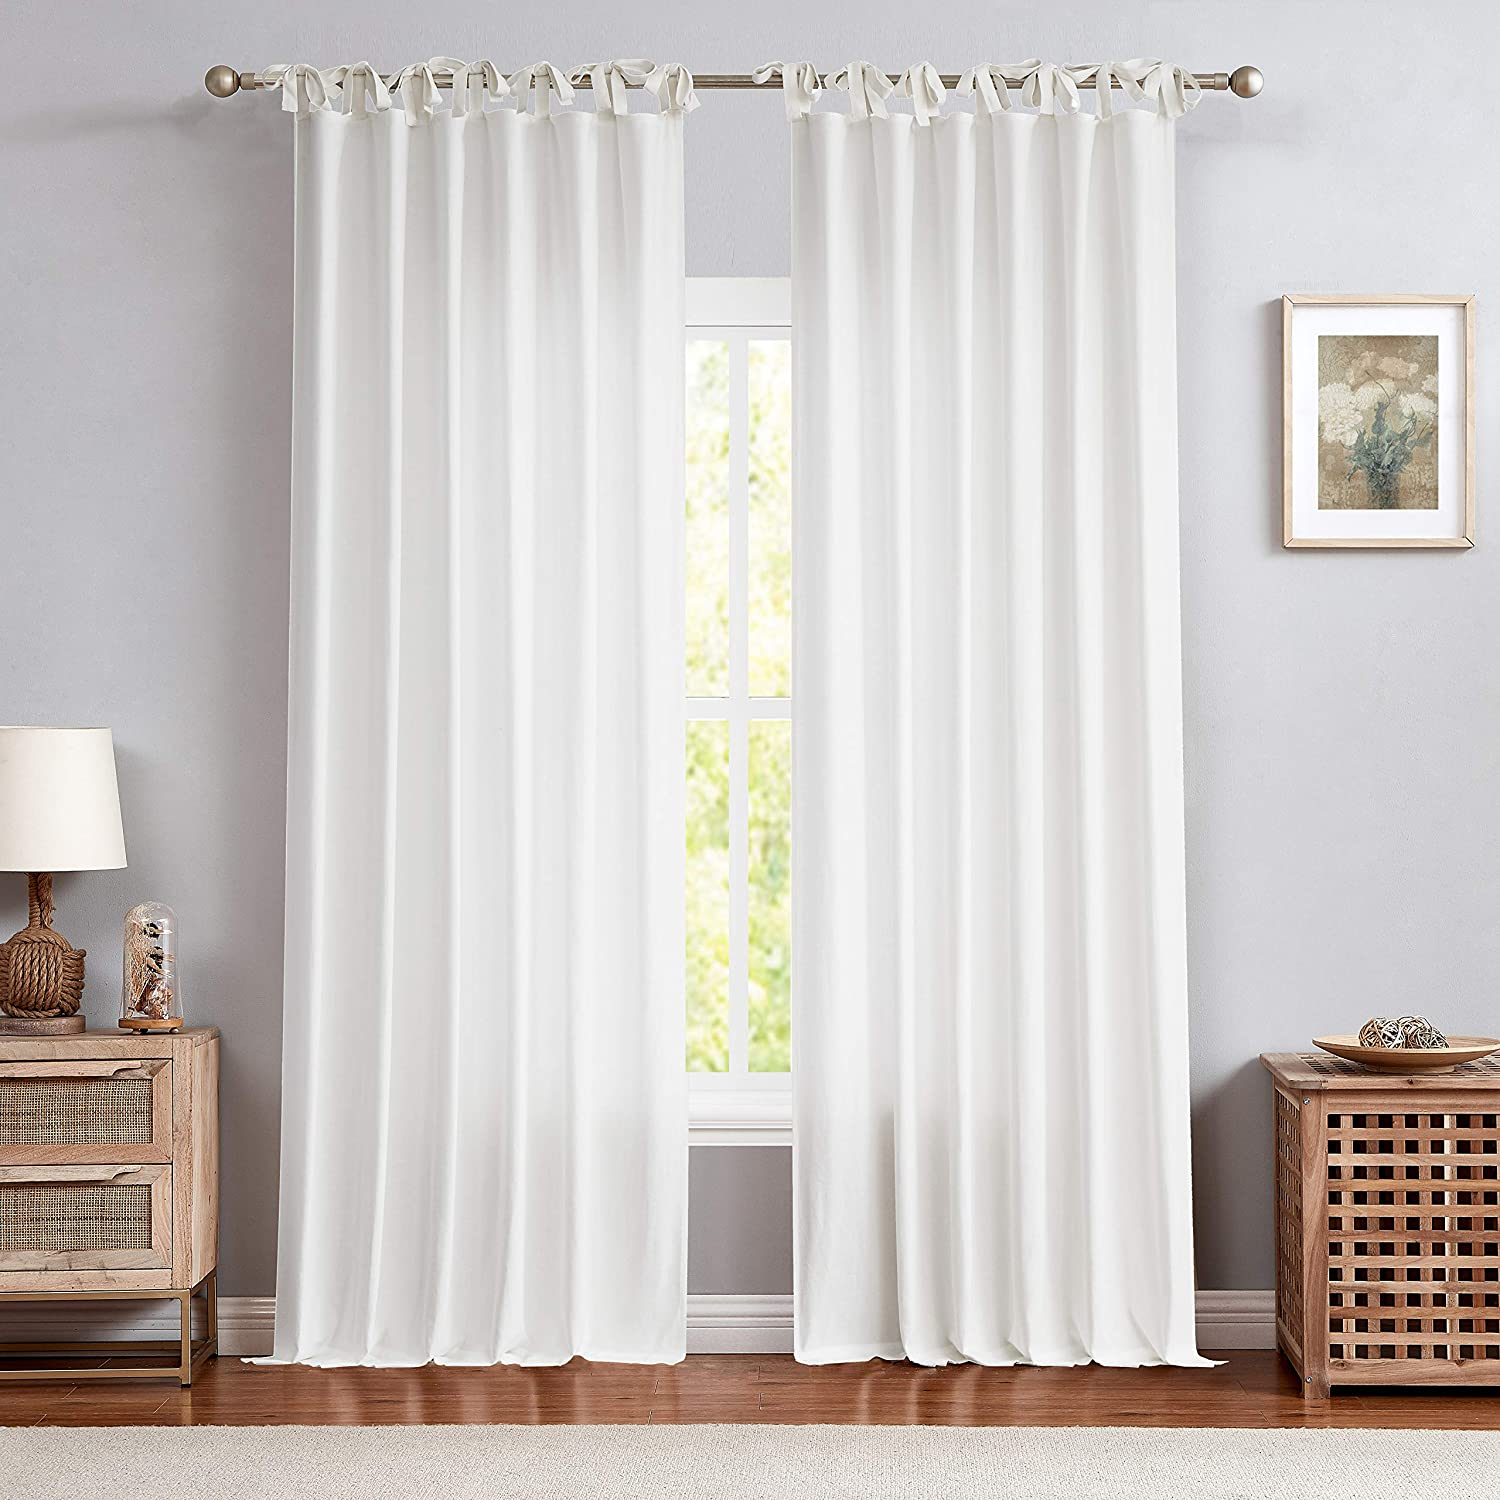 Central Park White Tie Top Curtain Treatment Sheer Semi New popularity favorite Window L